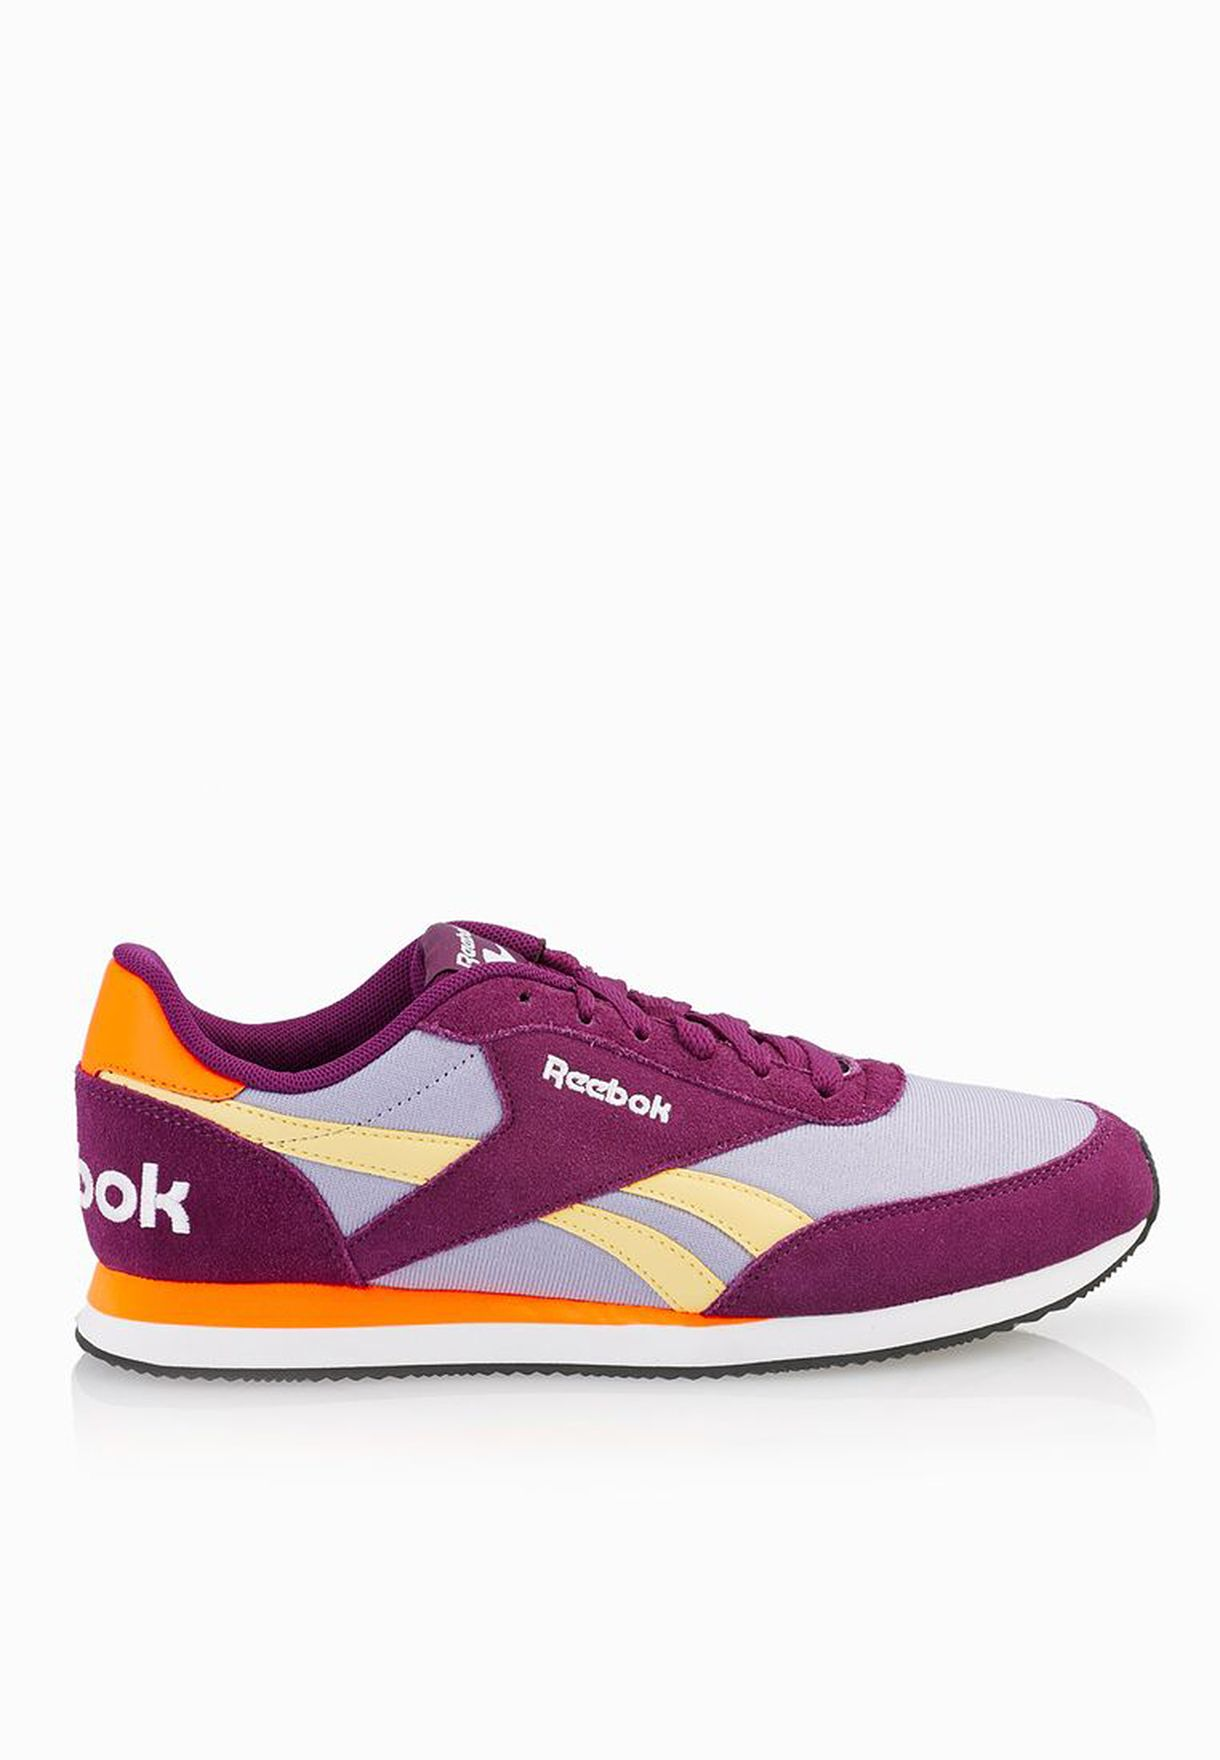 70e96c9f02c0 Shop Reebok multicolor Royal Classic Jogger 2RS V69136 for Women in ...